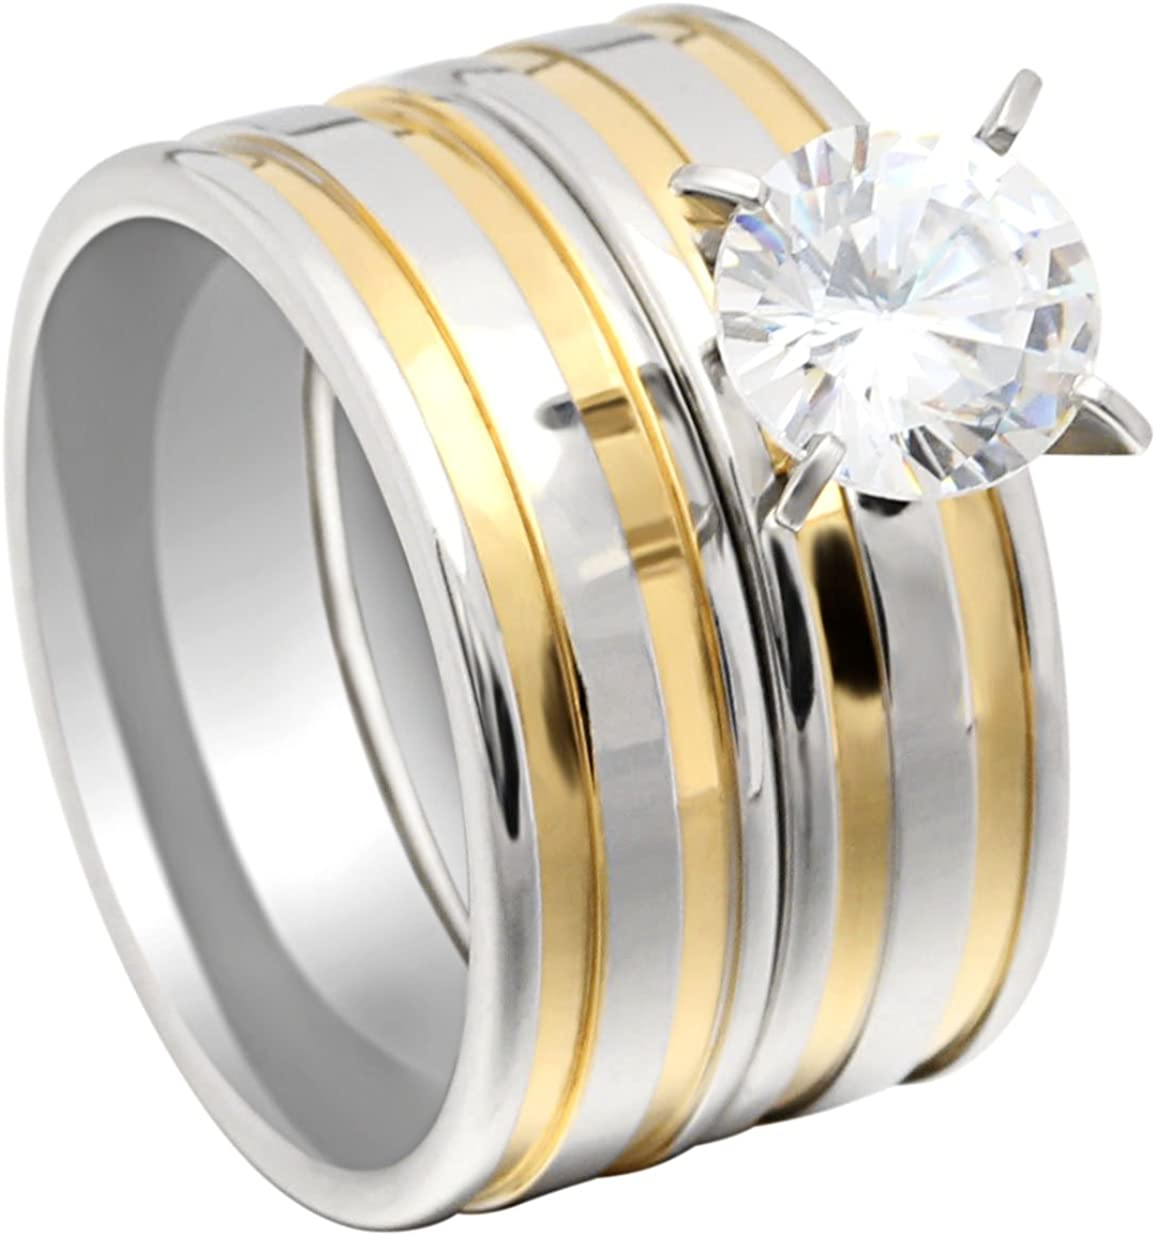 Ginger Lyne Collection Fawn Beautiful 2pcs Stainless Steel Engagement Wedding Ring and Band Set